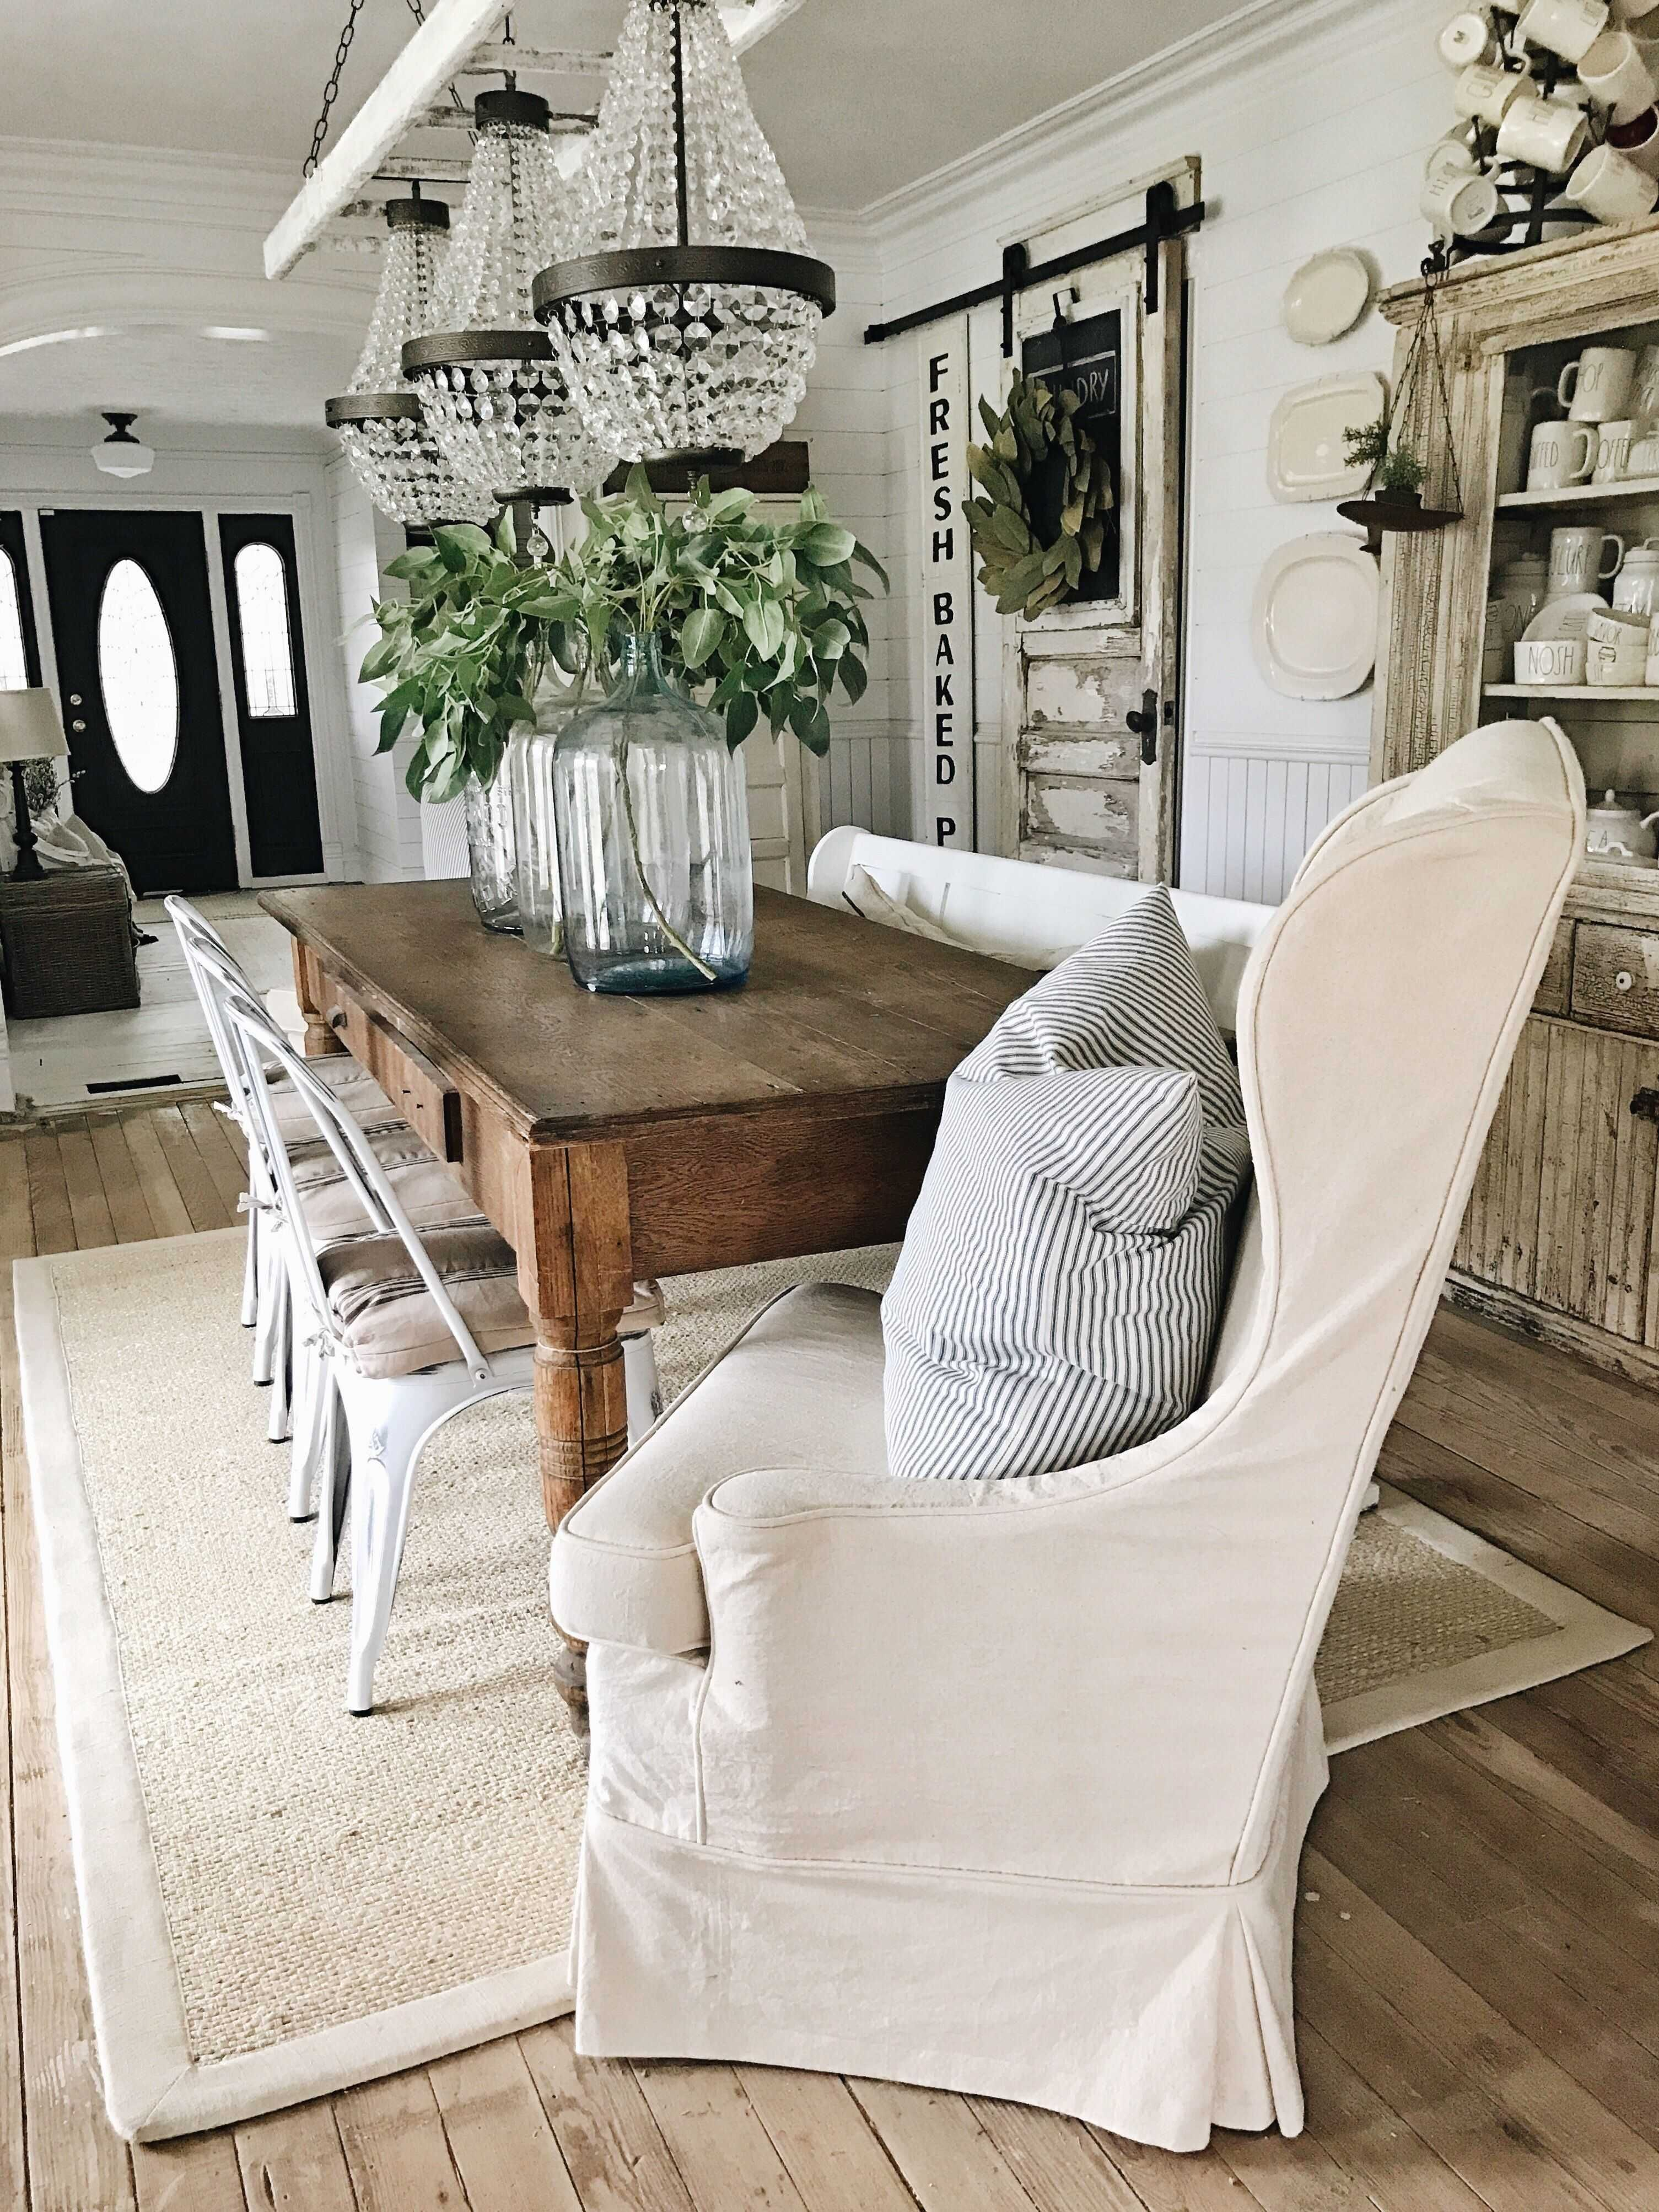 Southern Farmhouse Interior Best Of Southern Farmhouse Interior 20 Best French Country Dining Room Farmhouse Style Dining Room Farmhouse Dining Rooms Decor